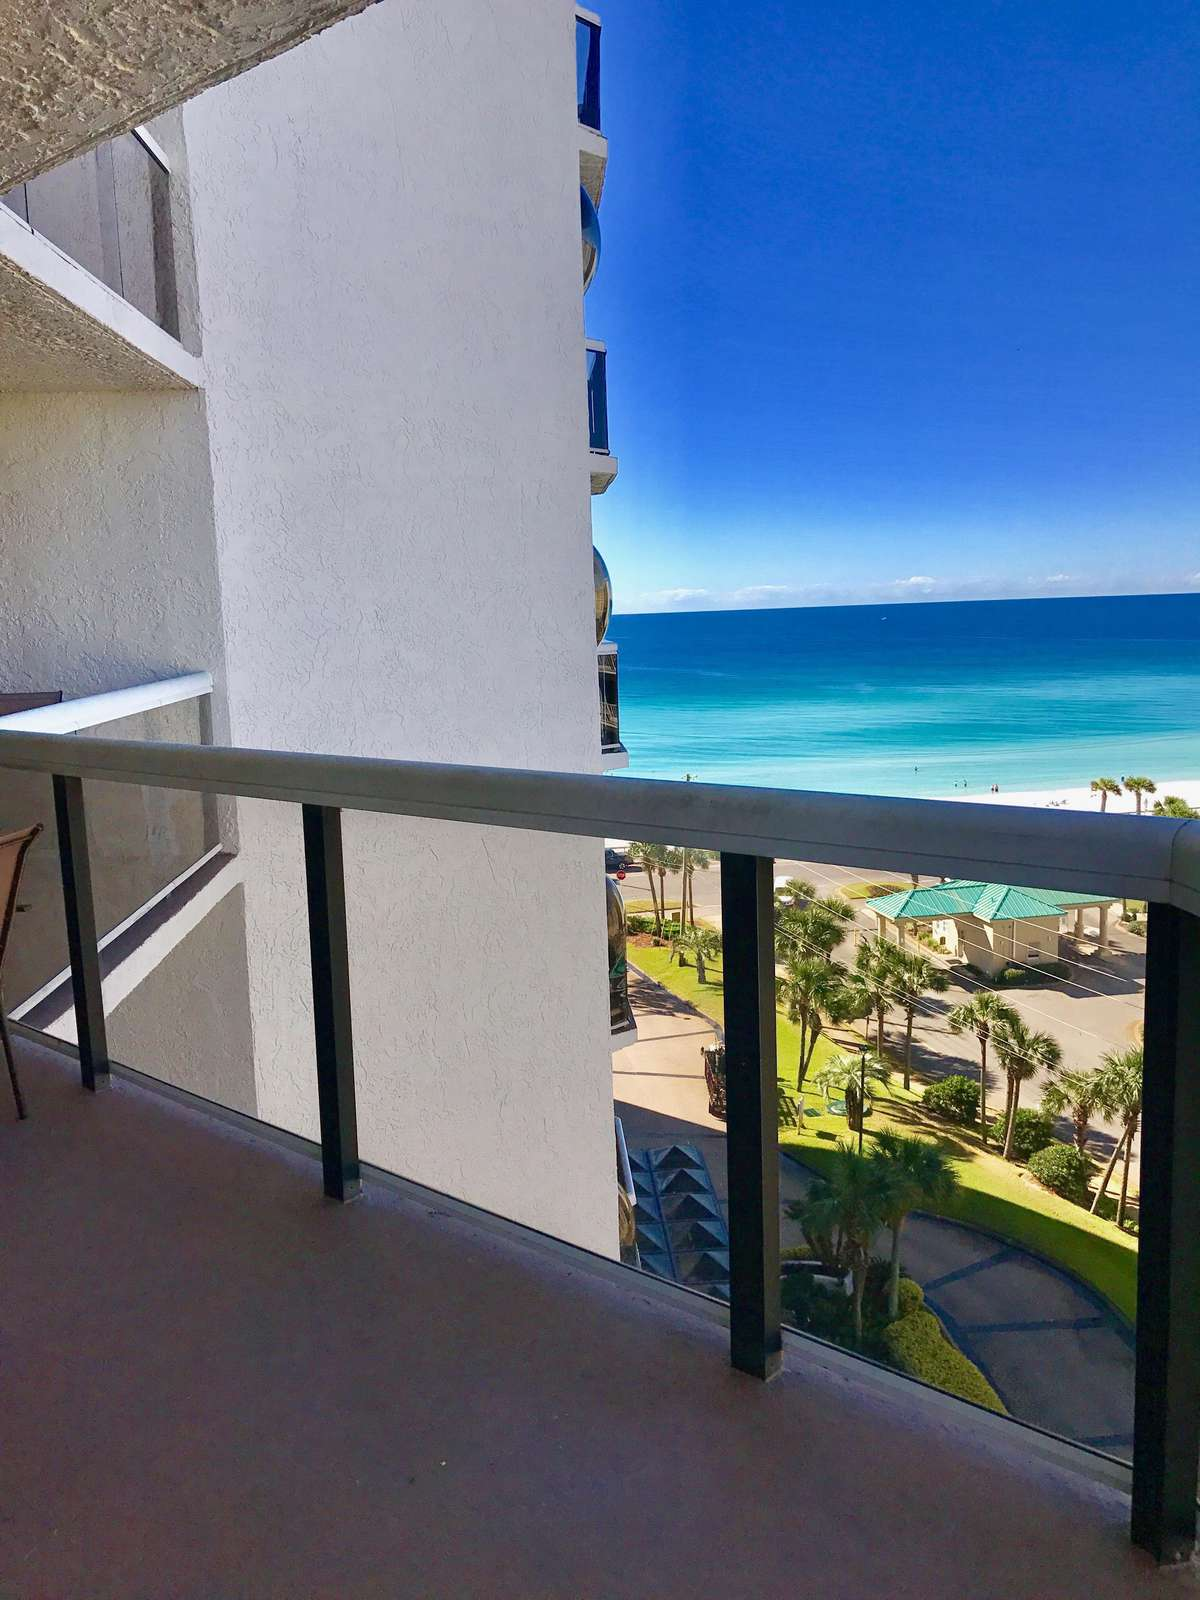 Enjoy the view from this balcony which runs the length of the condo!